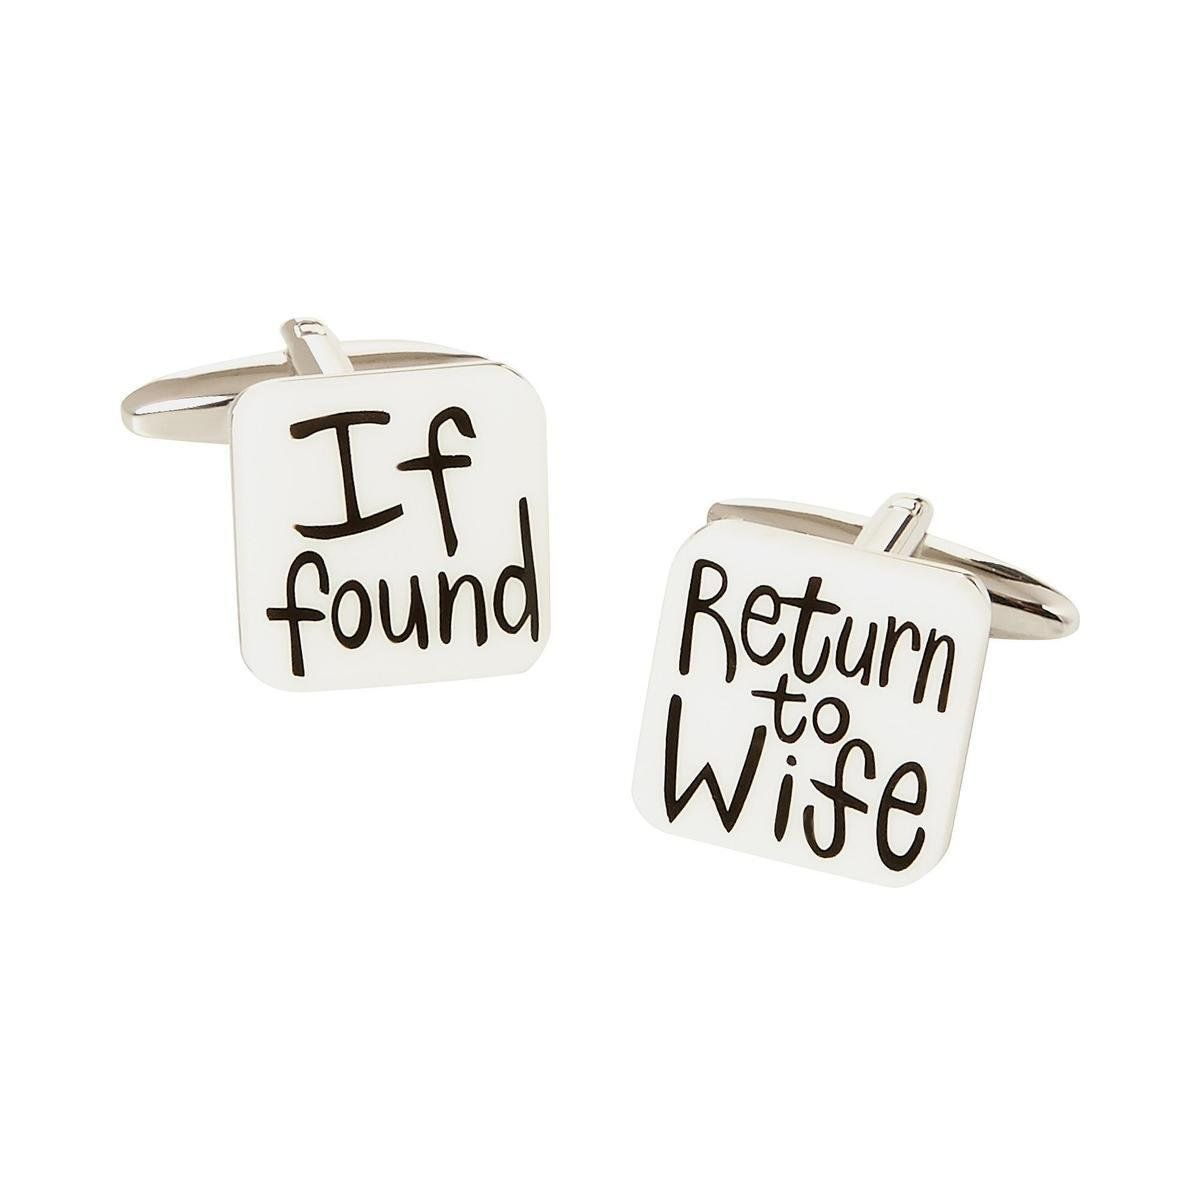 Silver 'If Found' cufflinks http://picvpic.com/men-accessories-cufflings/silver-if-found-cufflinks?ref=ku56GN